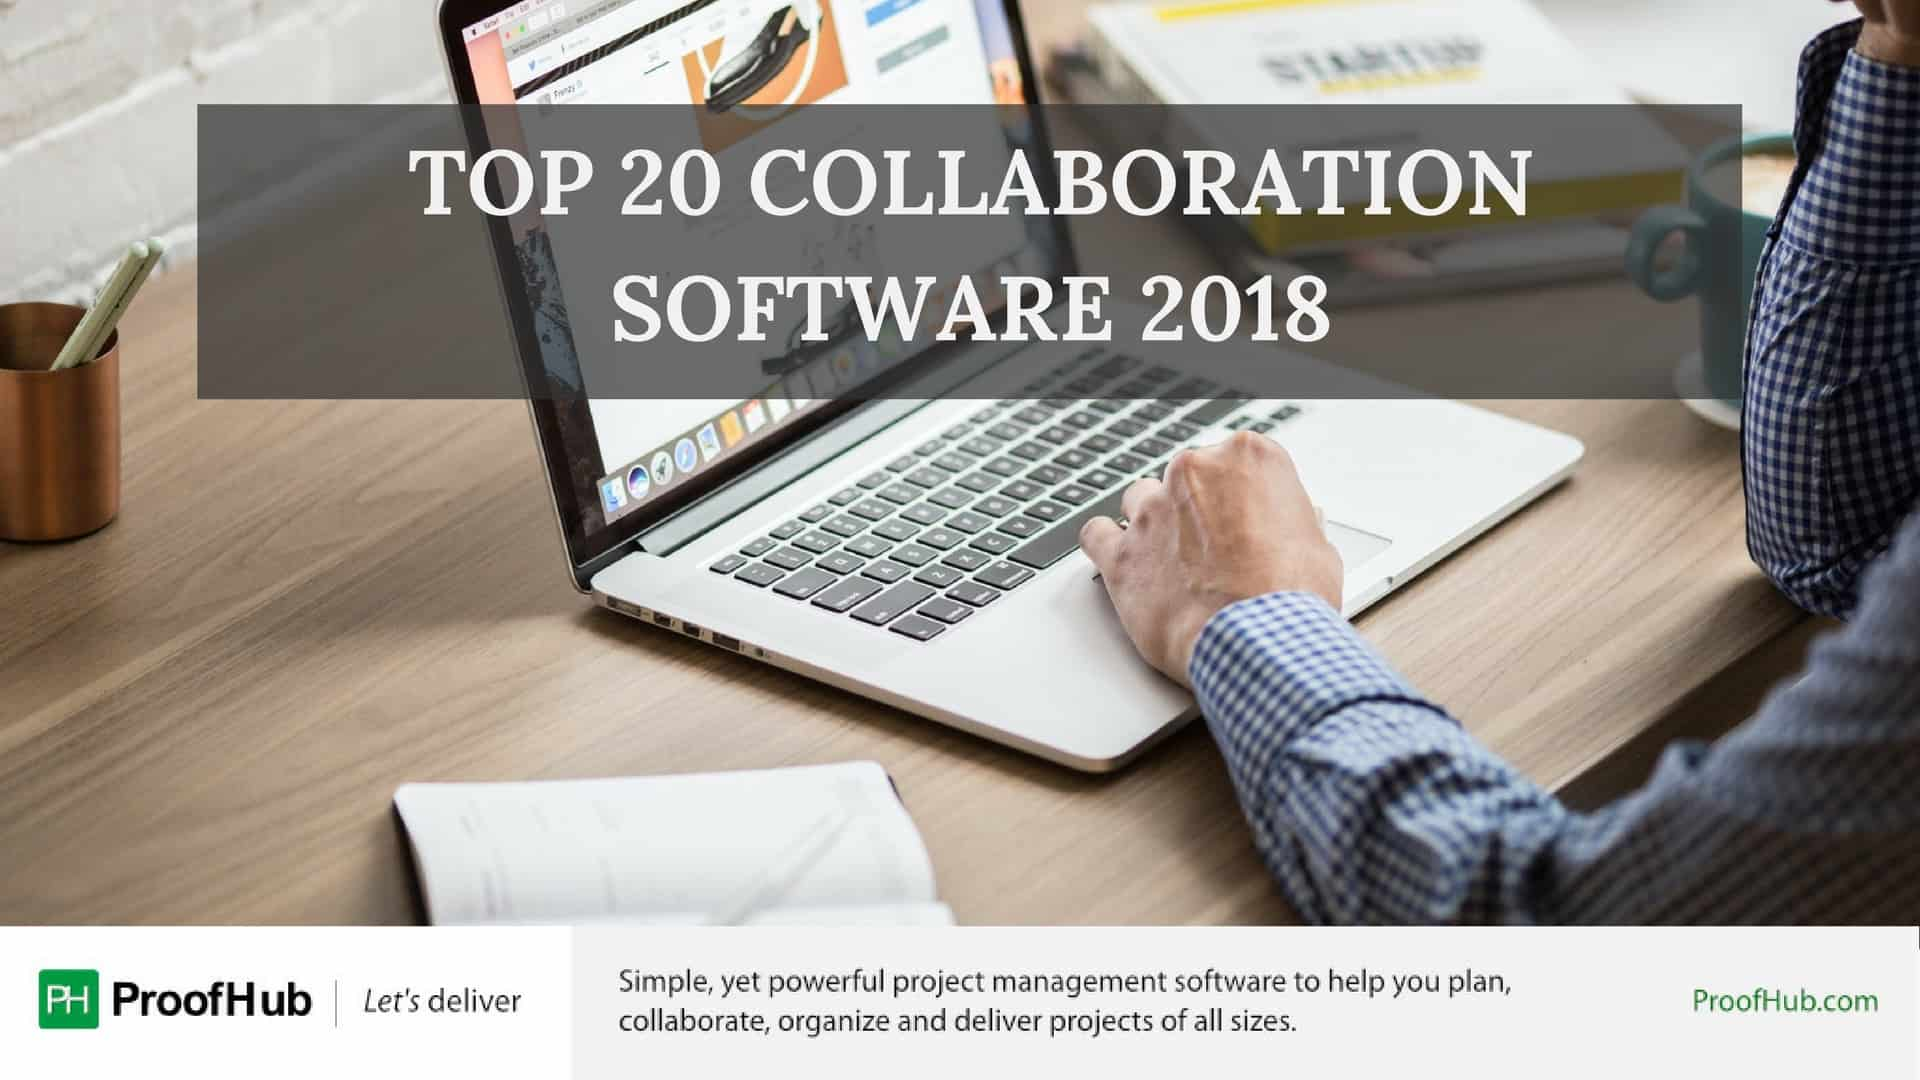 Top 20 Collaboration Software 2018